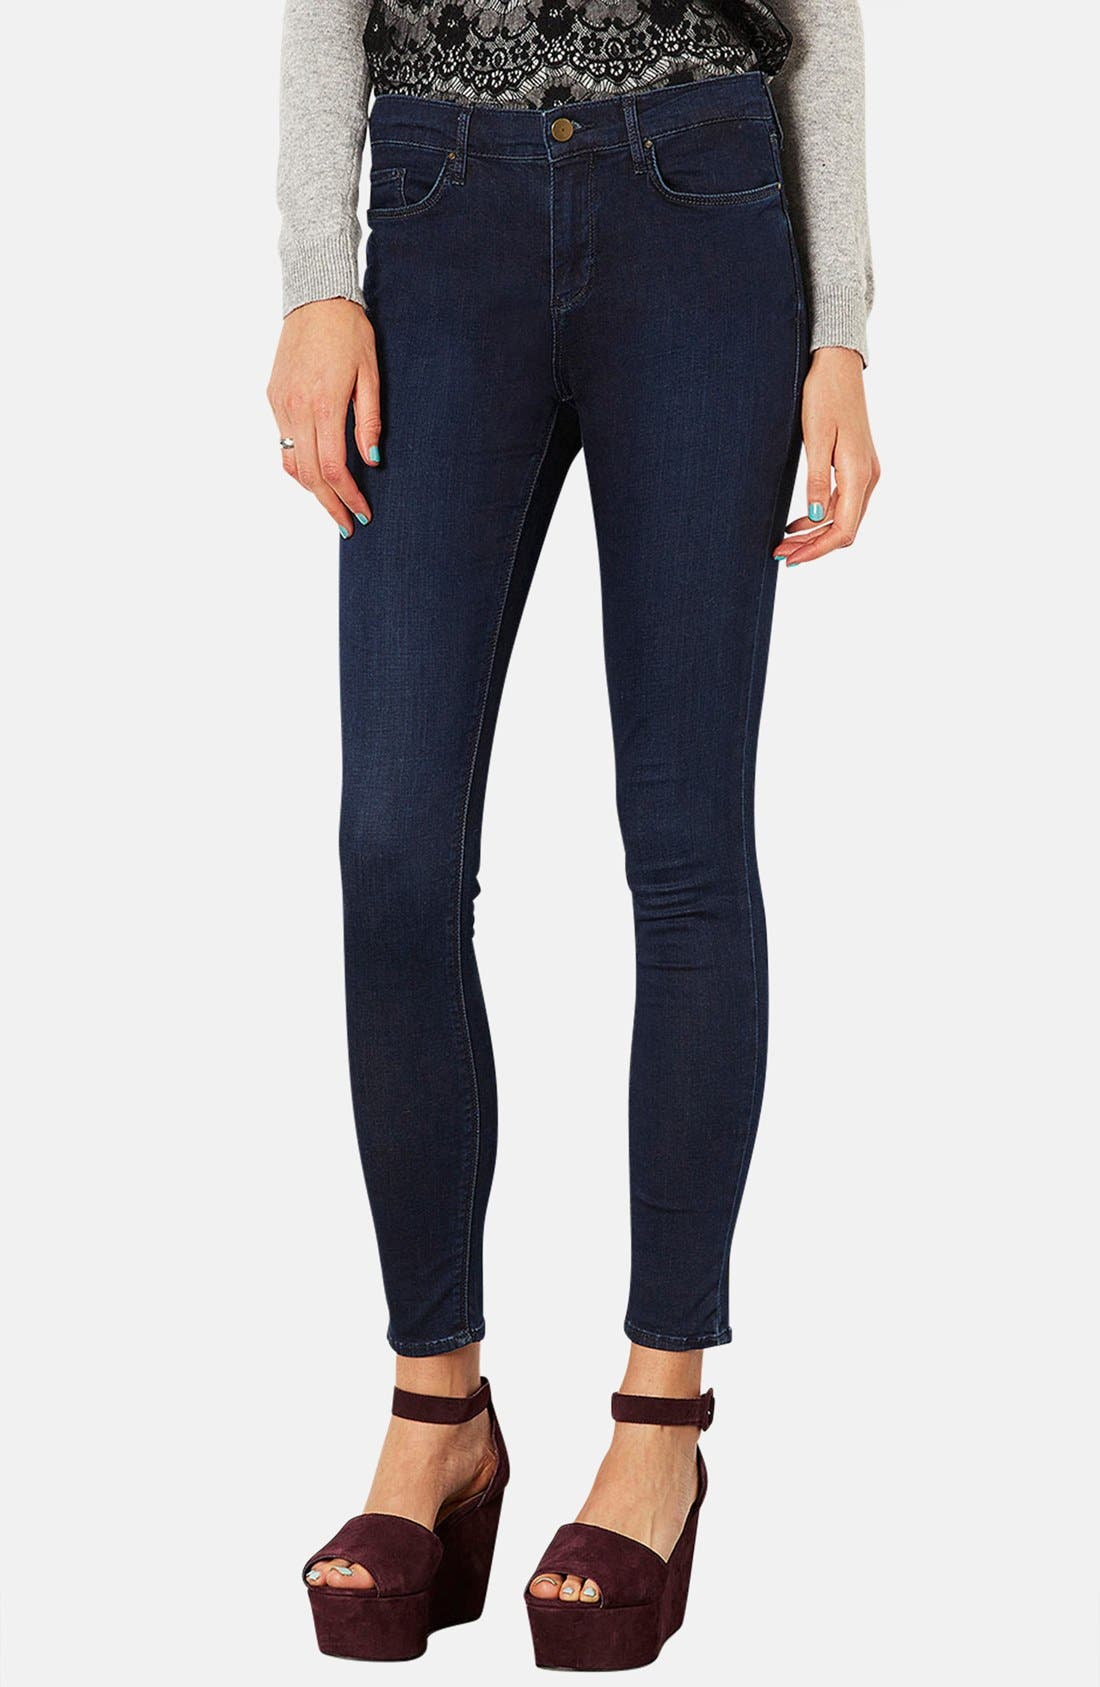 Main Image - Topshop Moto 'Leigh' Skinny Jeans (Blue Black) (Regular & Long)